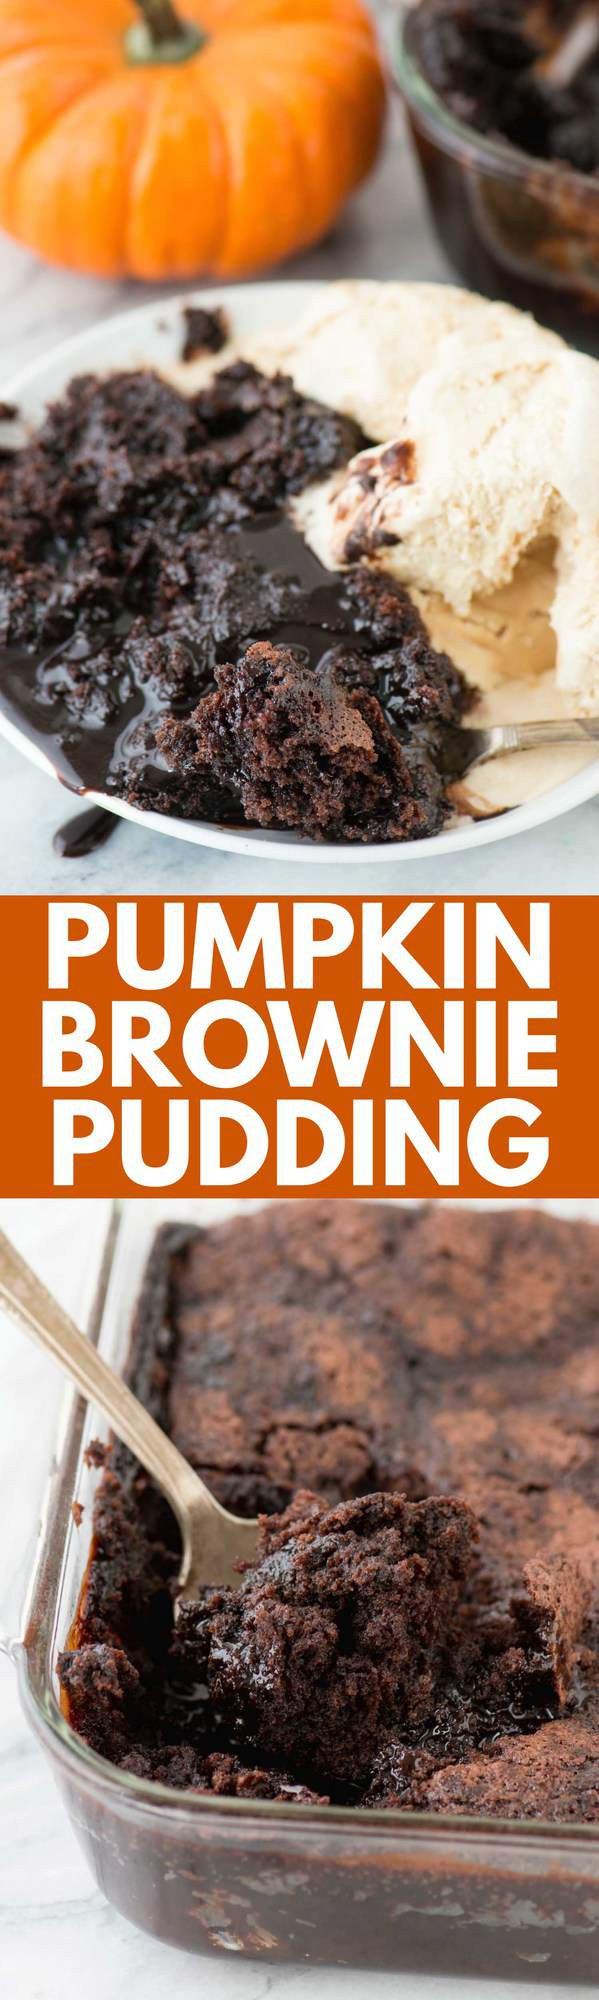 Pumpkin Brownie Pudding is a dessert that forms 2 layers while baking - a brownie layer and hot fudge pudding layer! Scoop it into a bowl and serve with ice cream! The perfect way to enjoy chocolate and pumpkin!